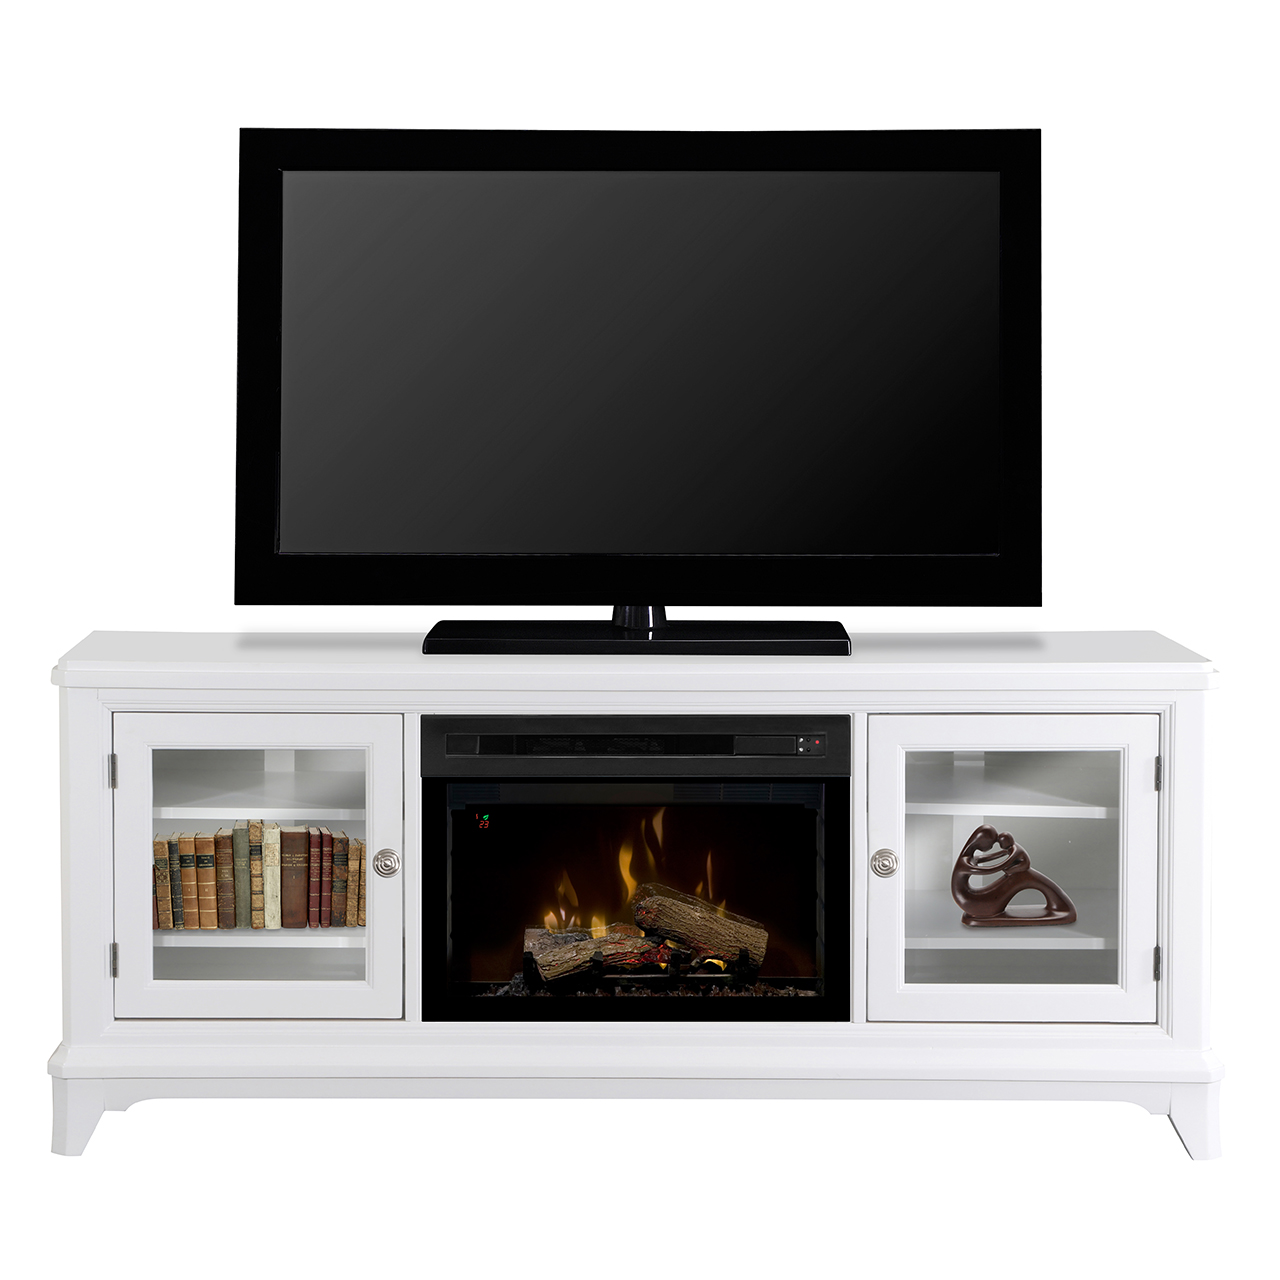 000 sq ft | Free Shipping!PortableFireplace.com